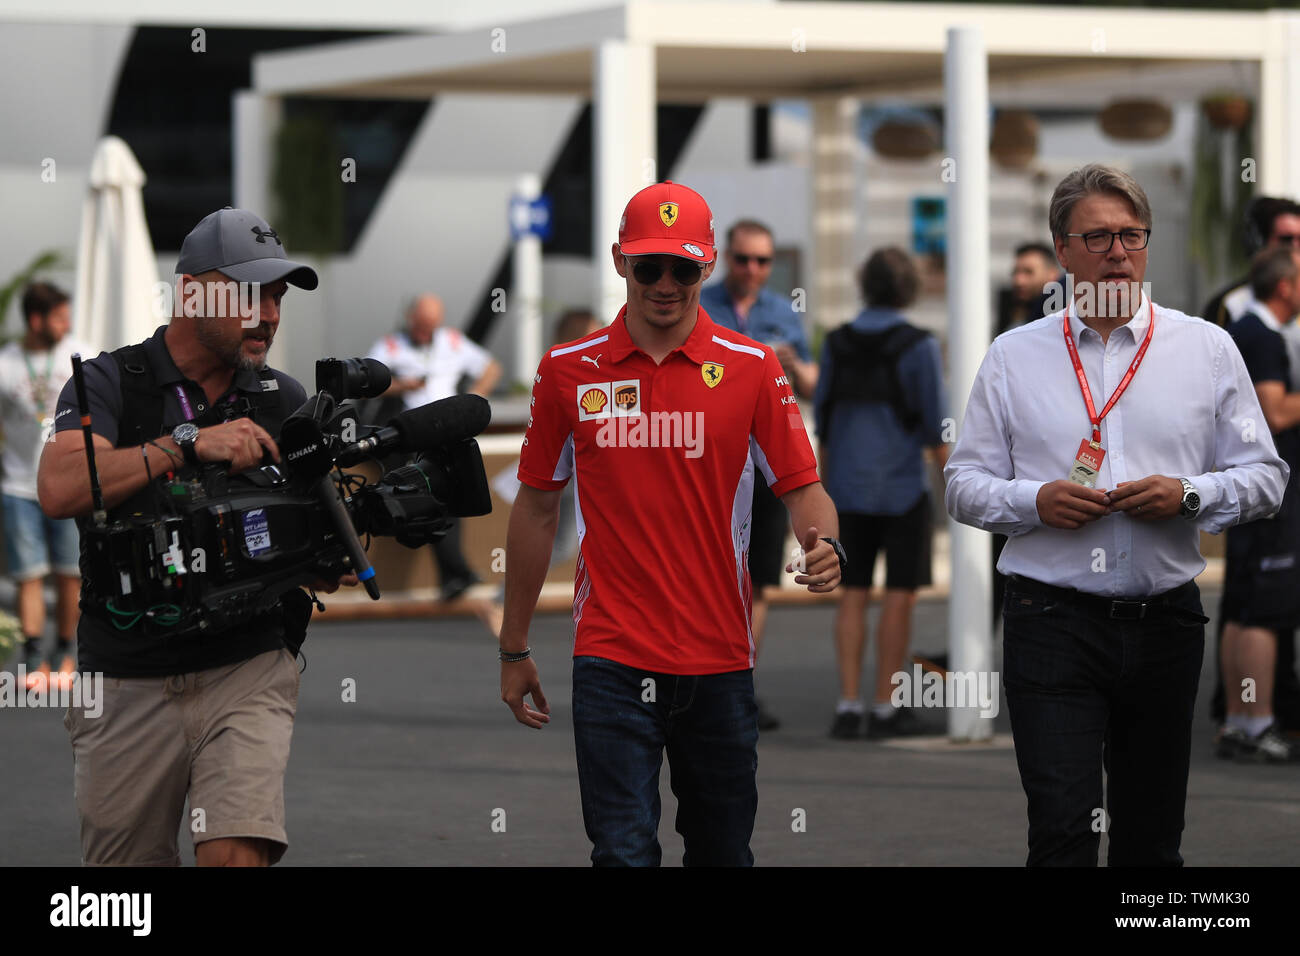 Marseille, France. 21st Jun 2019. FIA Formula 1 Grand Prix of France, practice sessions; Scuderia Ferrari, Charles Leclerc Credit: Action Plus Sports Images/Alamy Live News Stock Photo